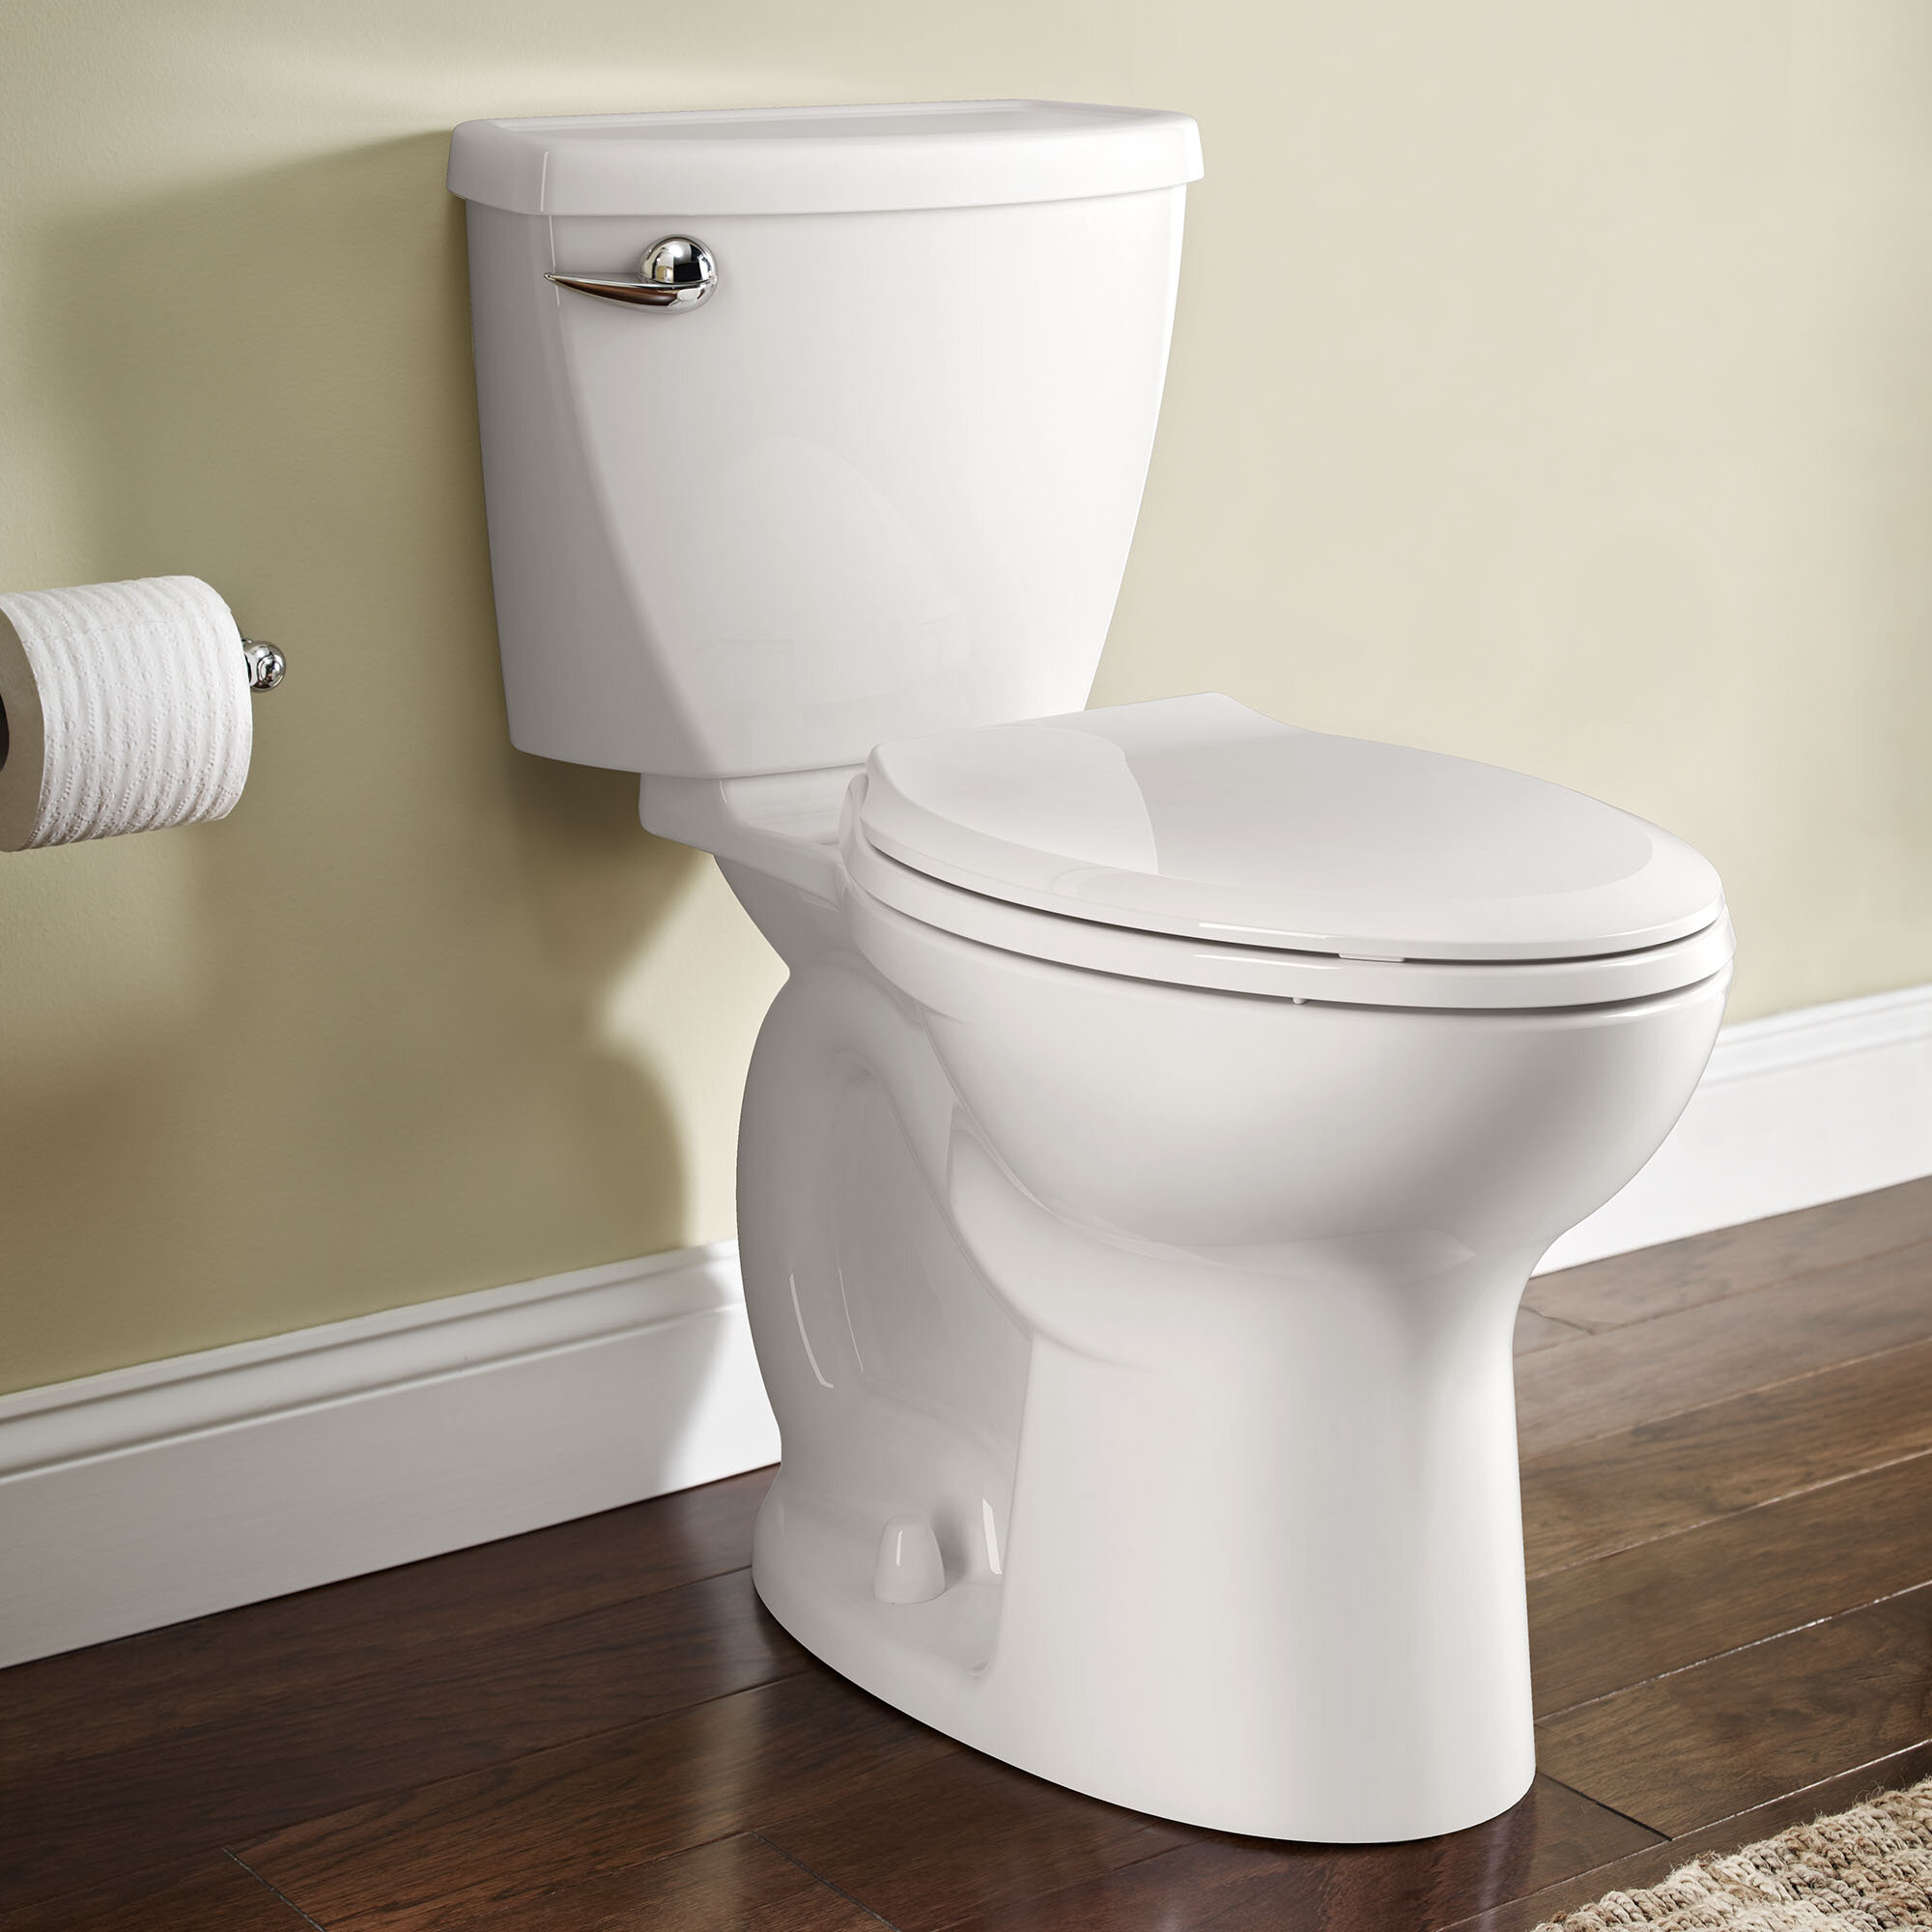 American Standard Cadet 3 1 28 Gpf Water Efficient Elongated Two Piece Toilet Seat Not Included Wayfair